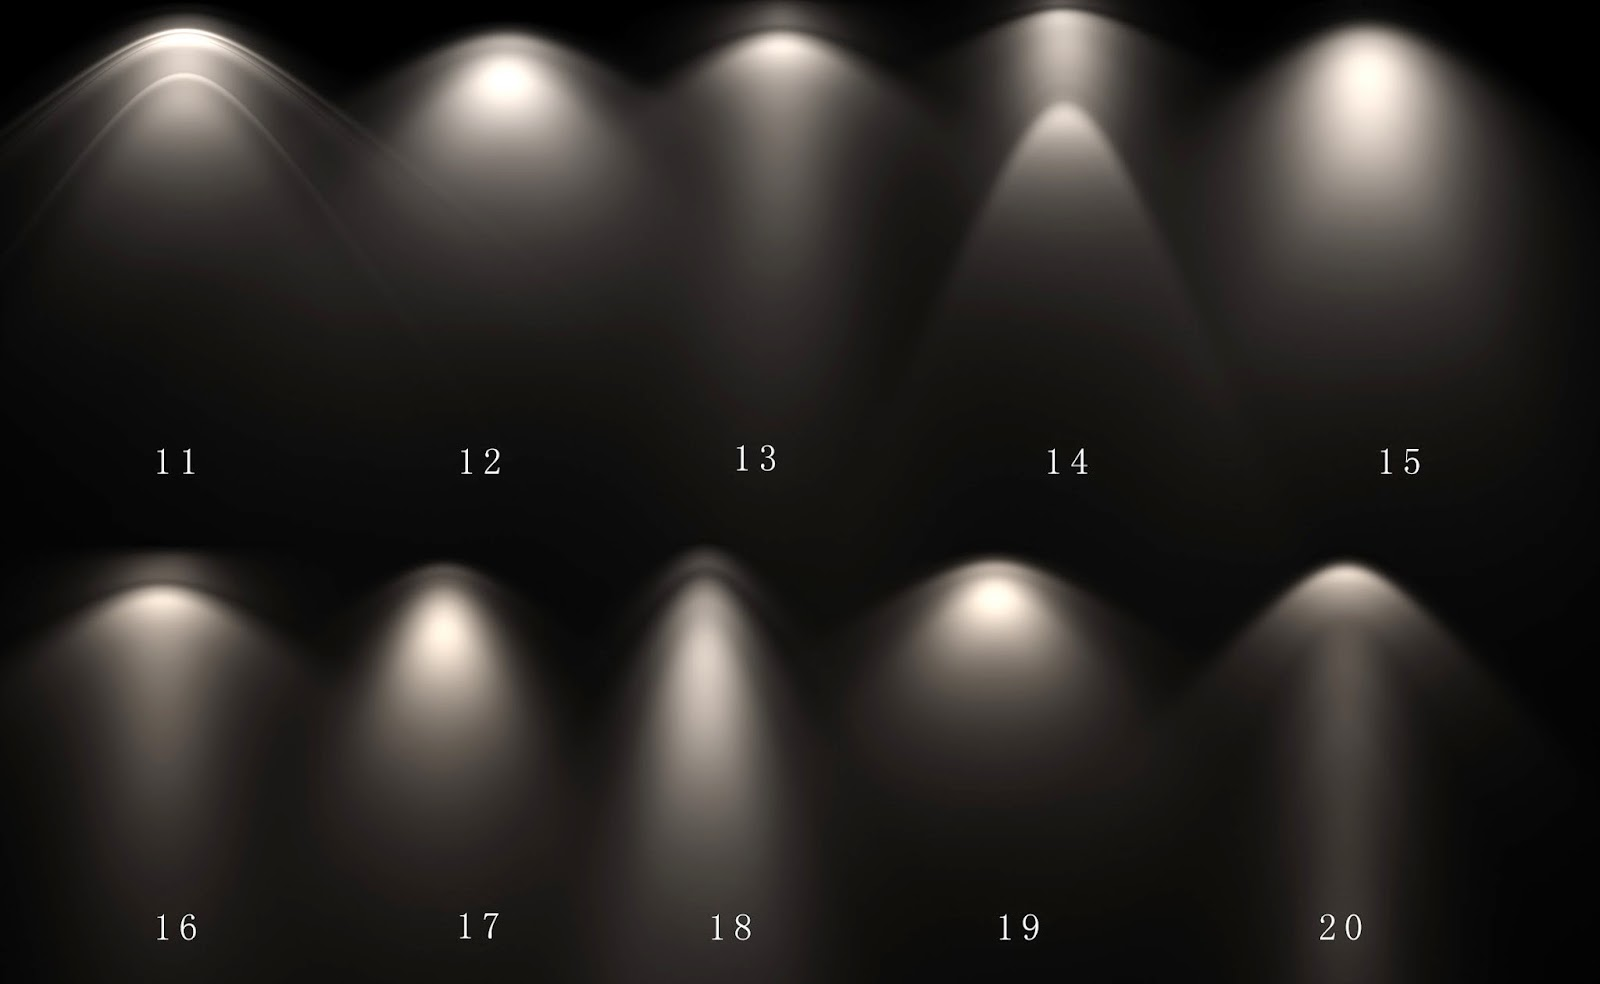 3ds max ies lights free download & import in 3ds max tutorials.